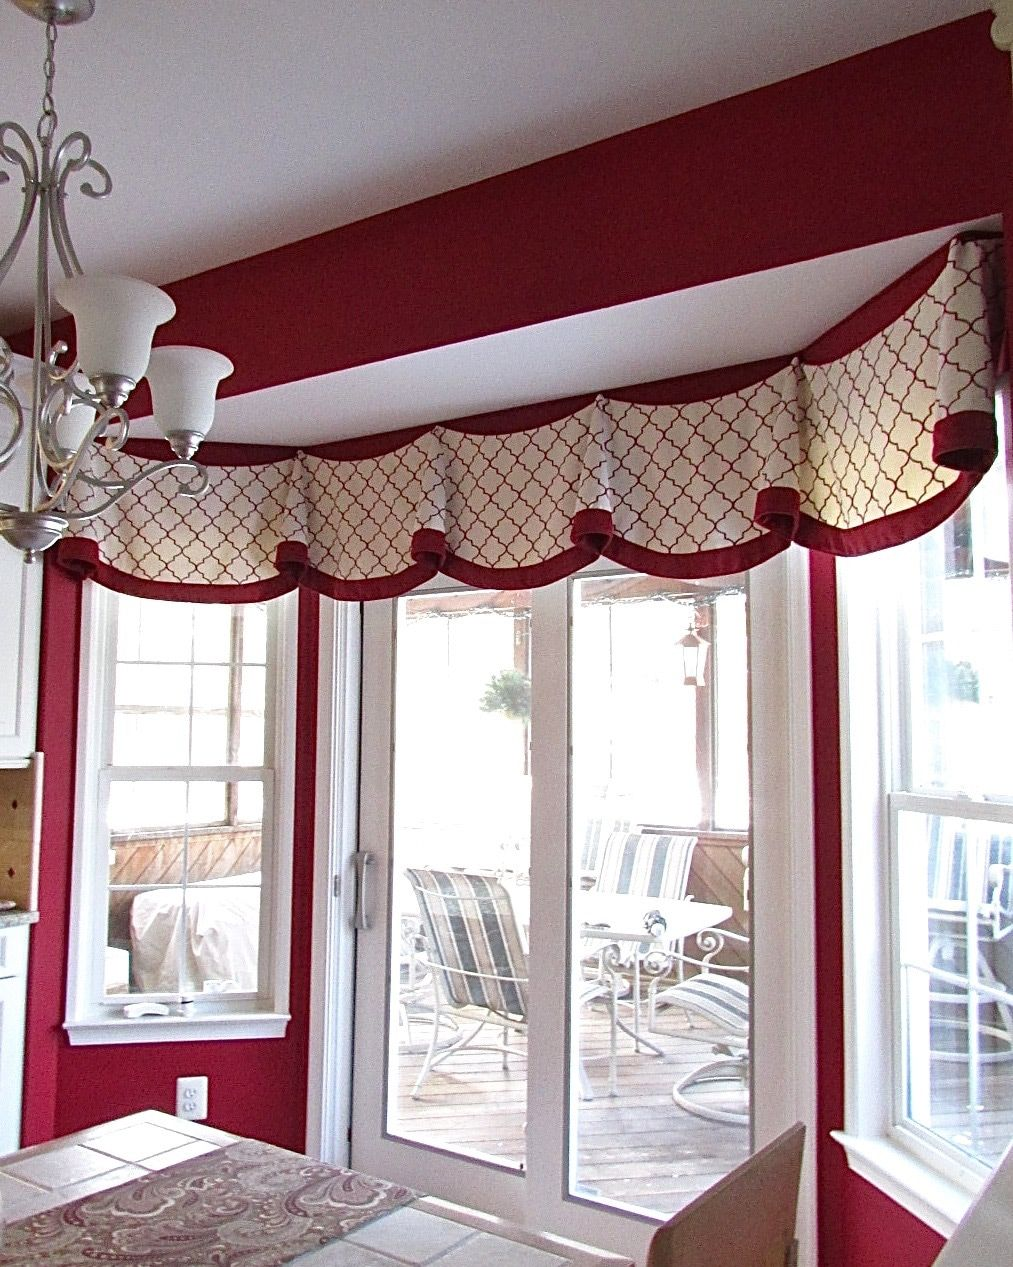 Drapery Design Pictures And Window Treatment Ideas For Top Treatments Such As Valances Cornices